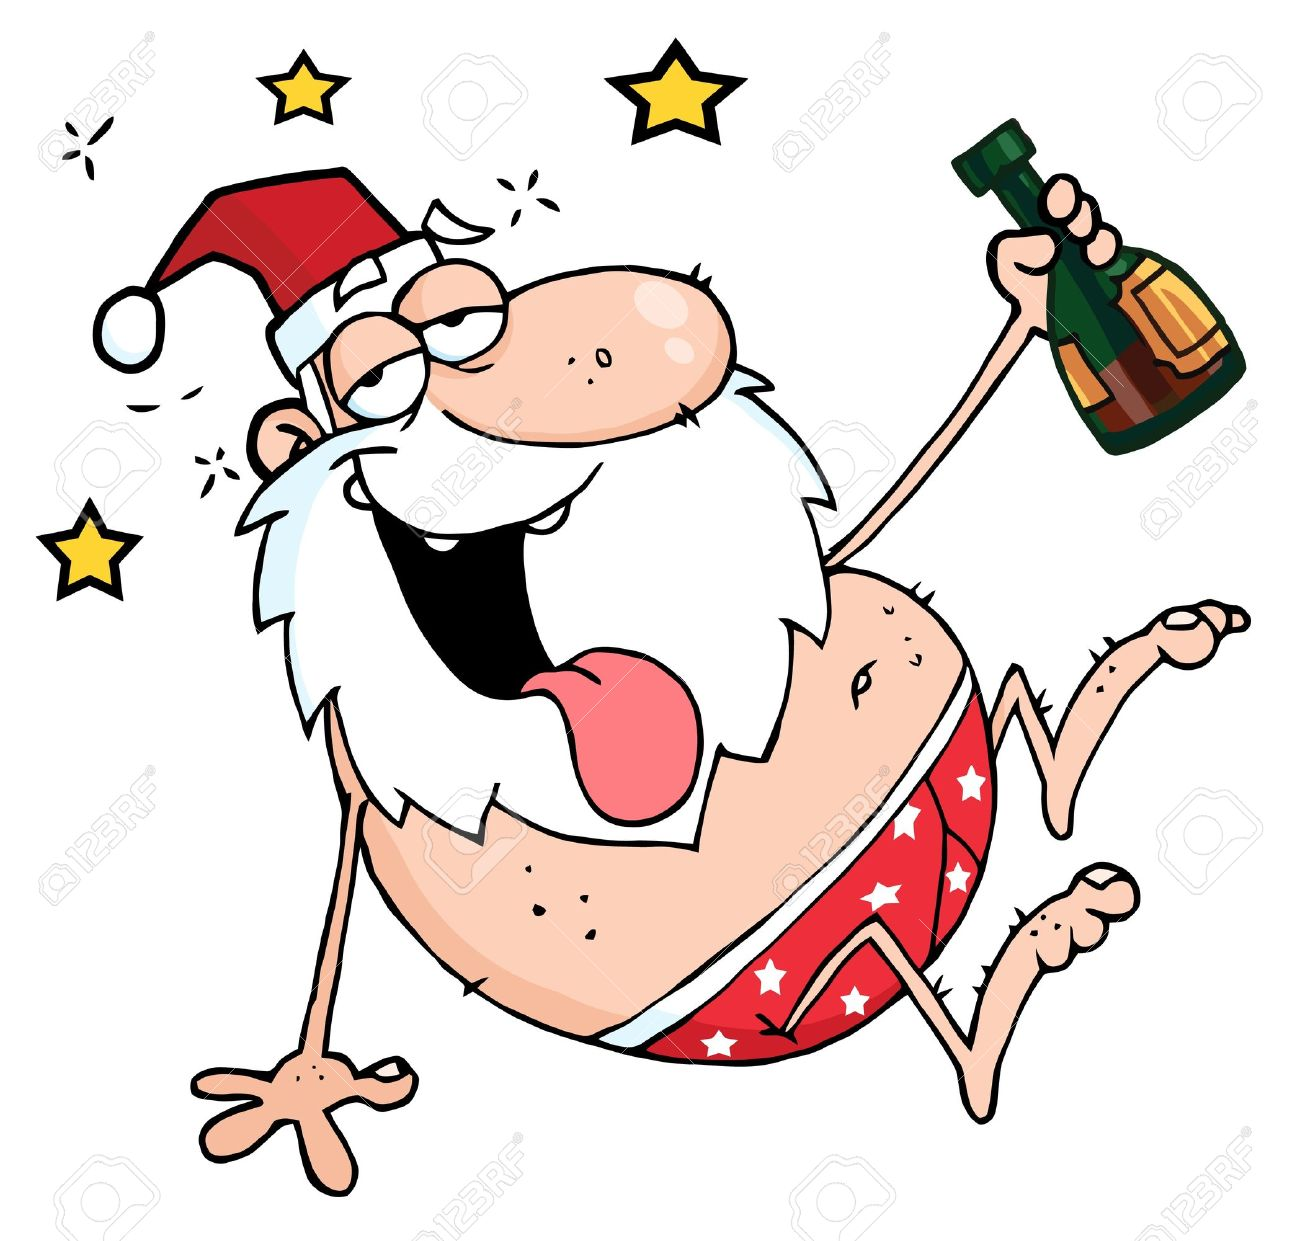 Christmas drunk clipart.